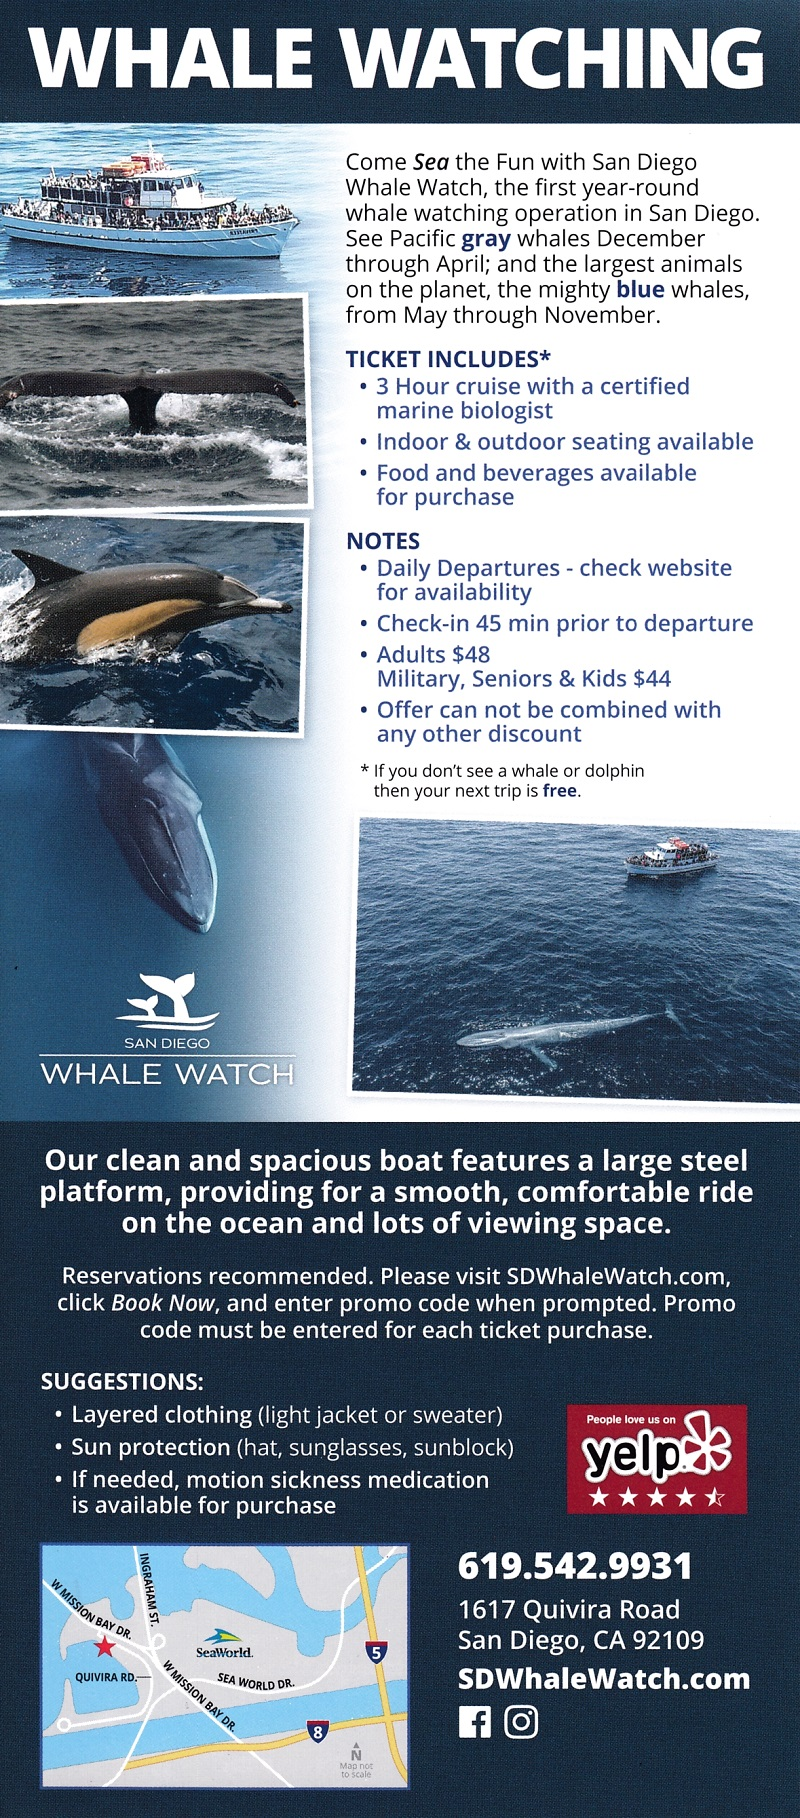 San Diego Whale Watching brochure thumbnail